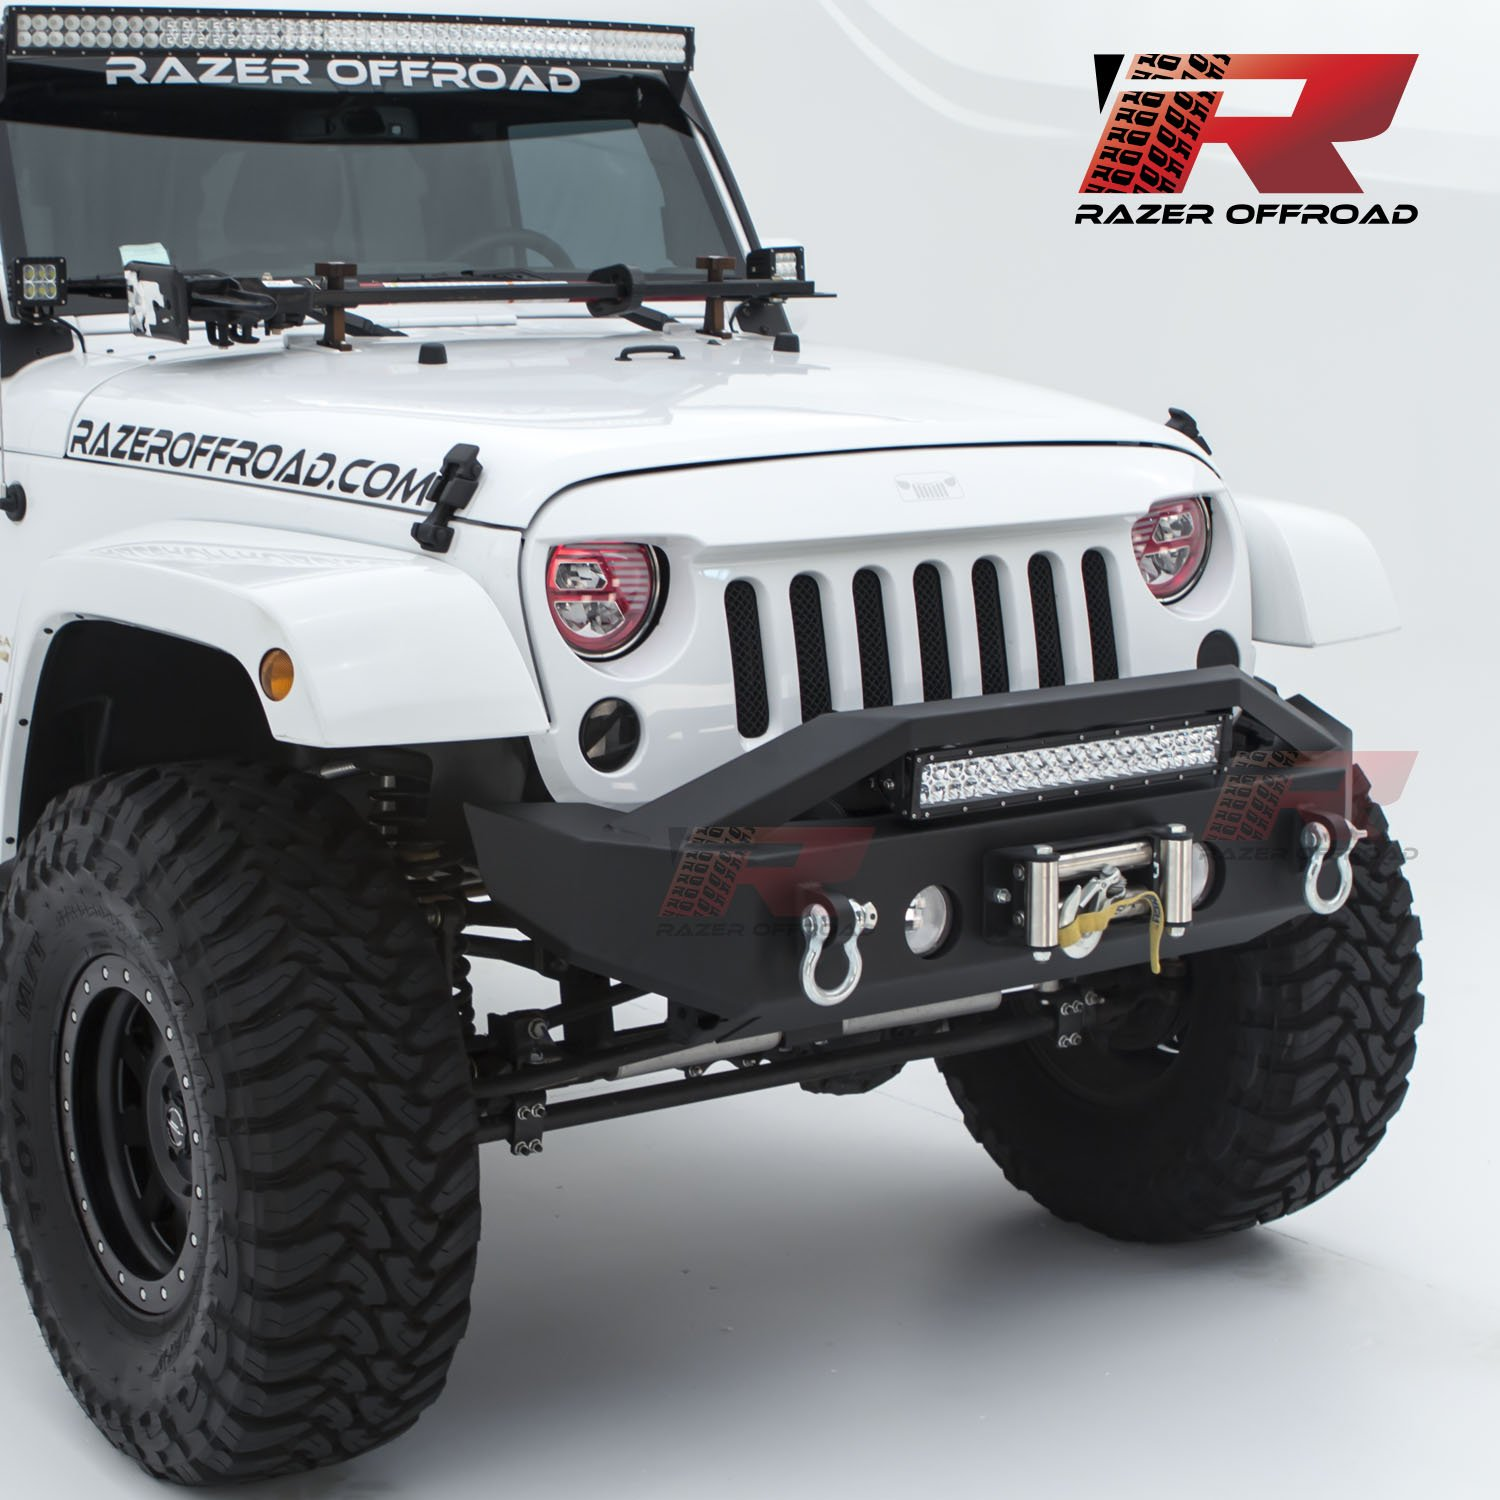 Razer Auto Black Textured Rock Crawler Stubby Front Bumper with OE Fog Light Hole, 2x D-Ring and Built-In 22' LED Light bar mount & Winch Mount Plate (Black) for 07-18 Jeep Wrangler JK